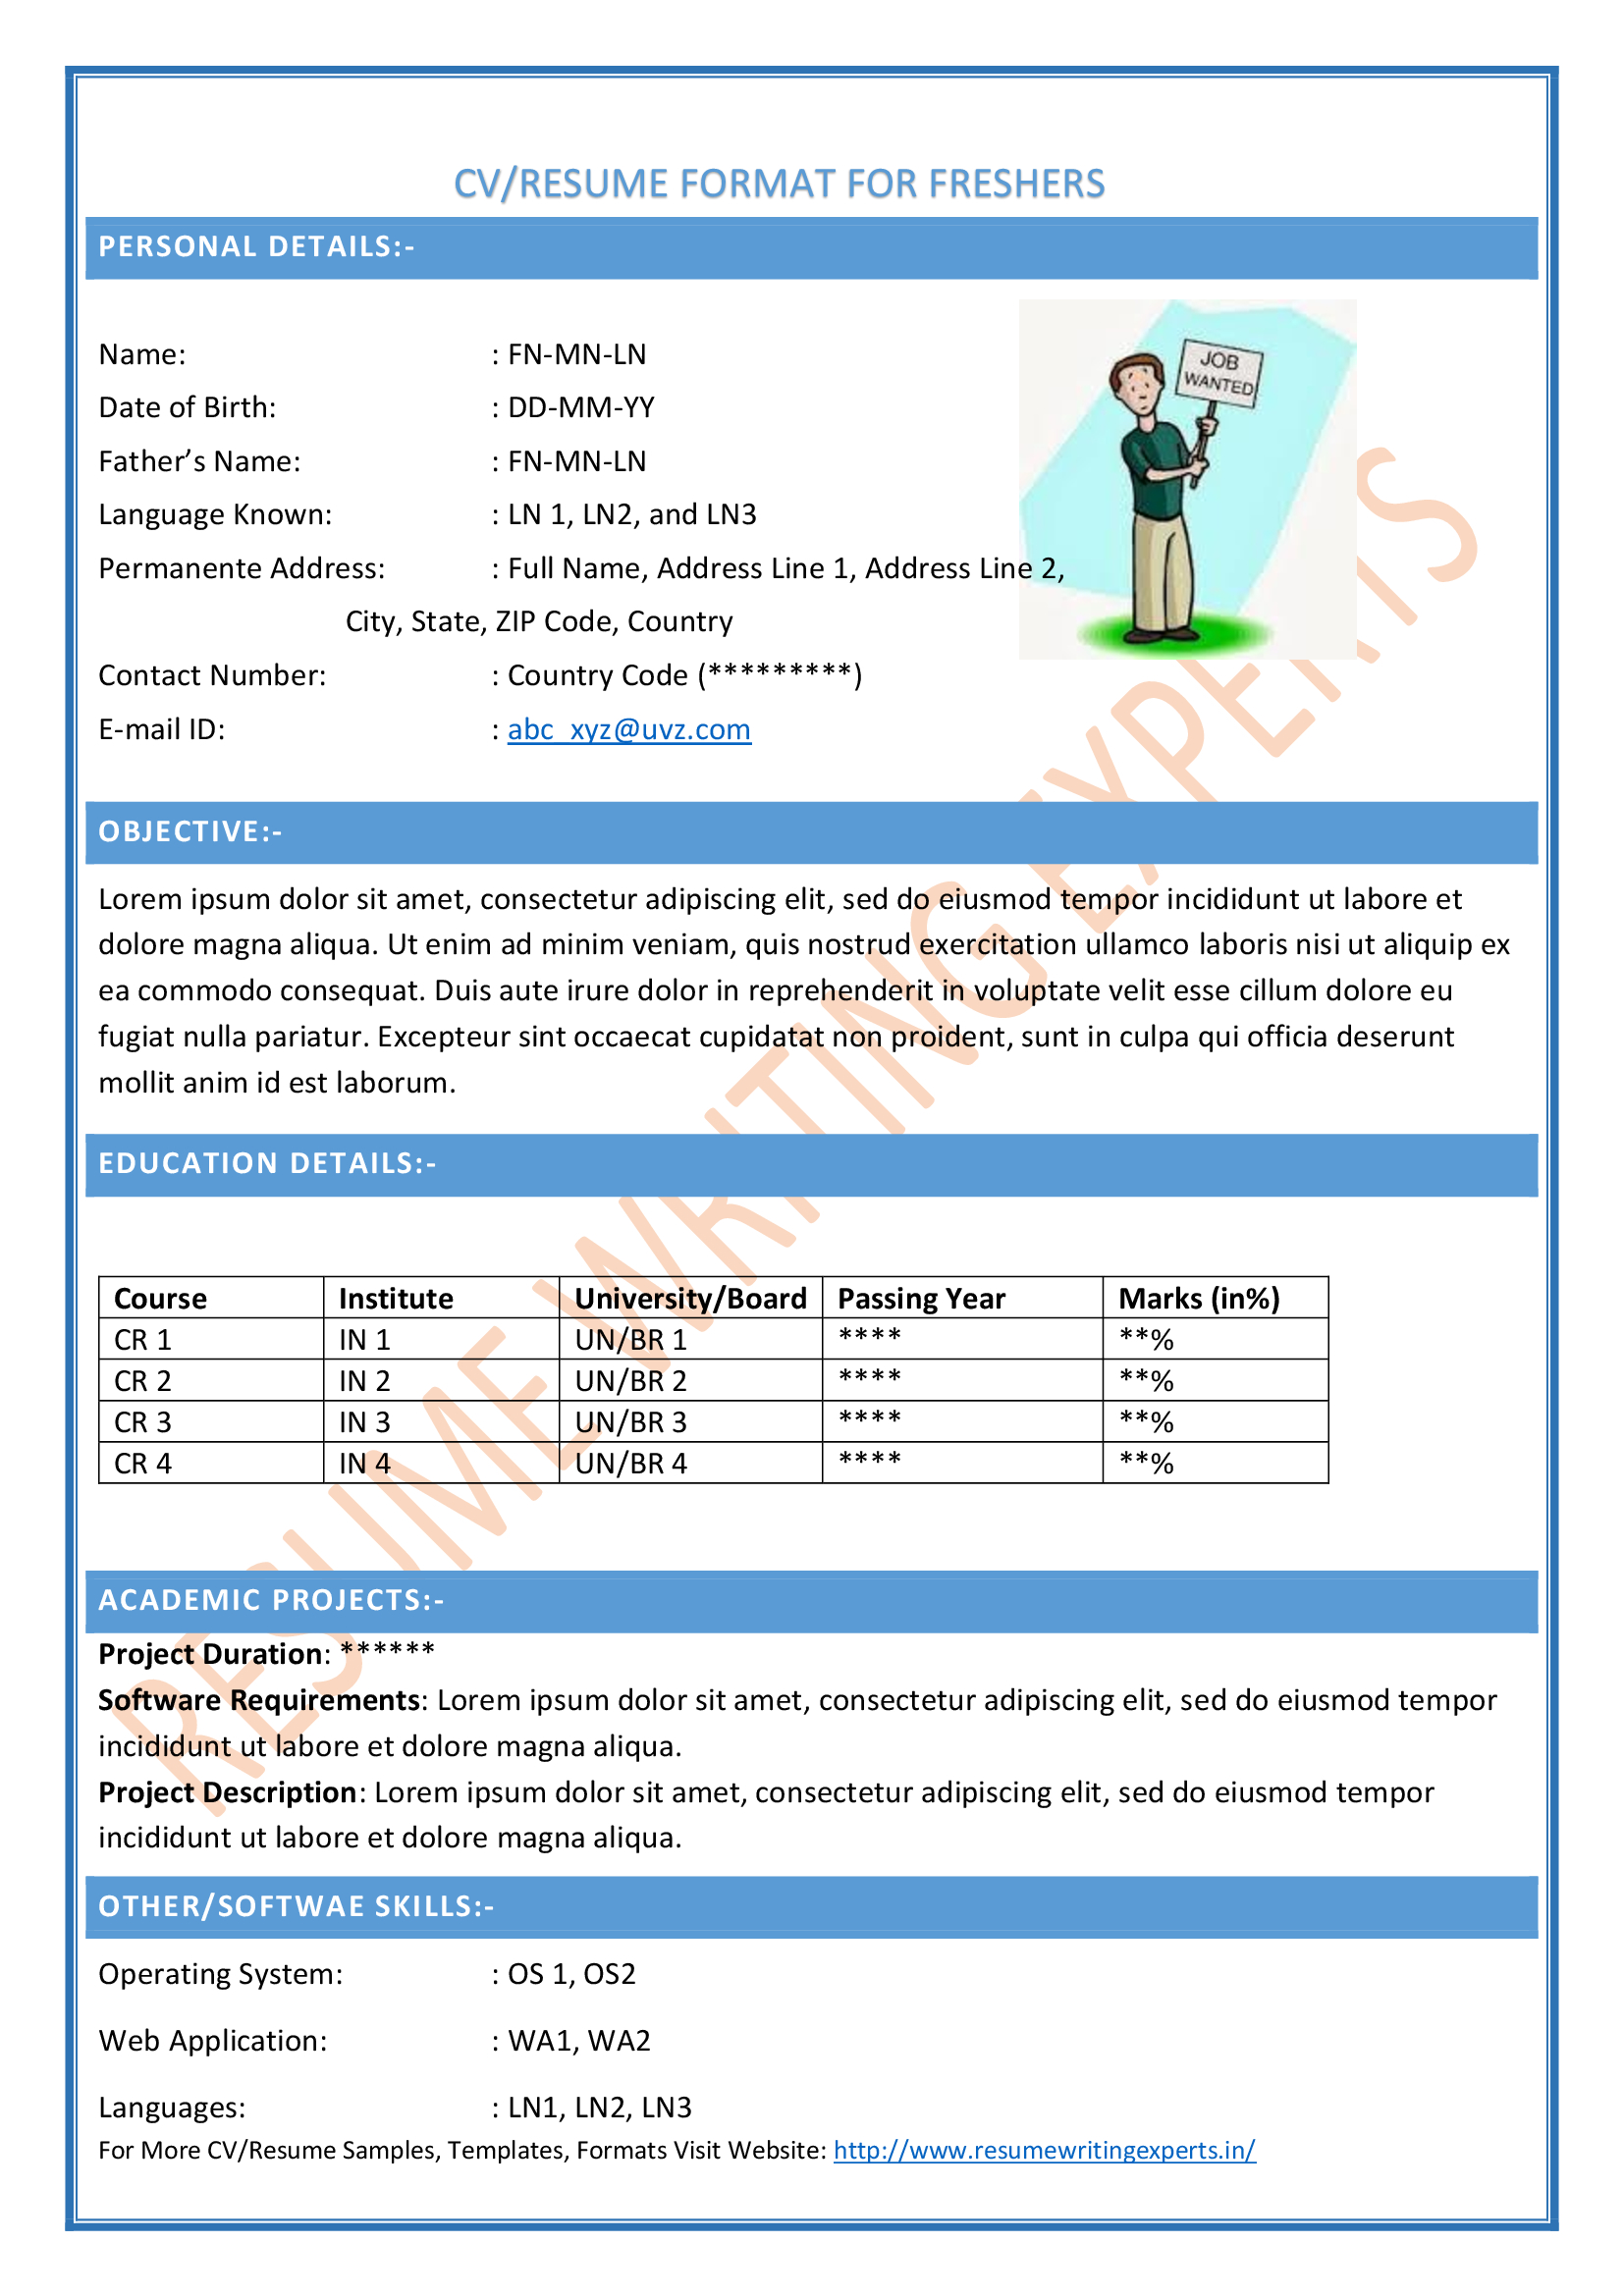 browse our popular resume template samples - Online Resume Formats 2